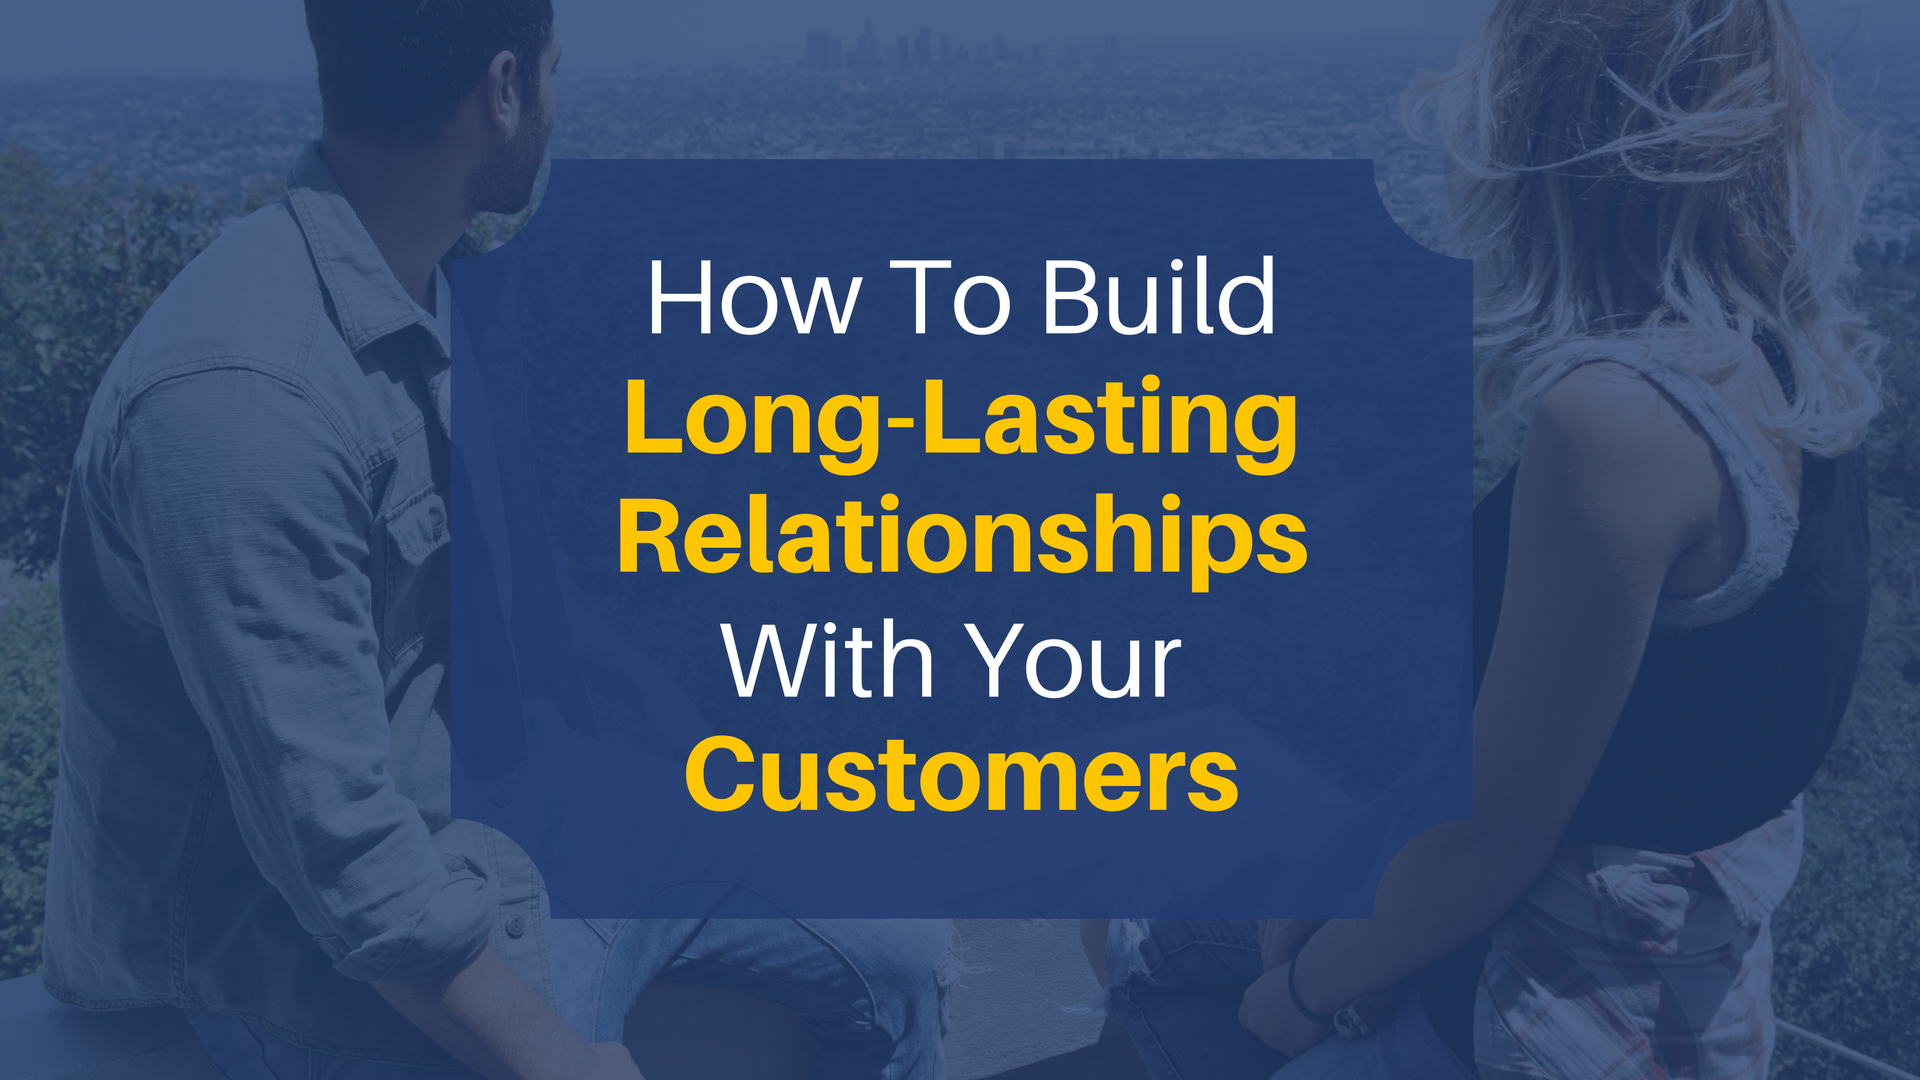 How To Build Long-Lasting Relationships With Your Customers